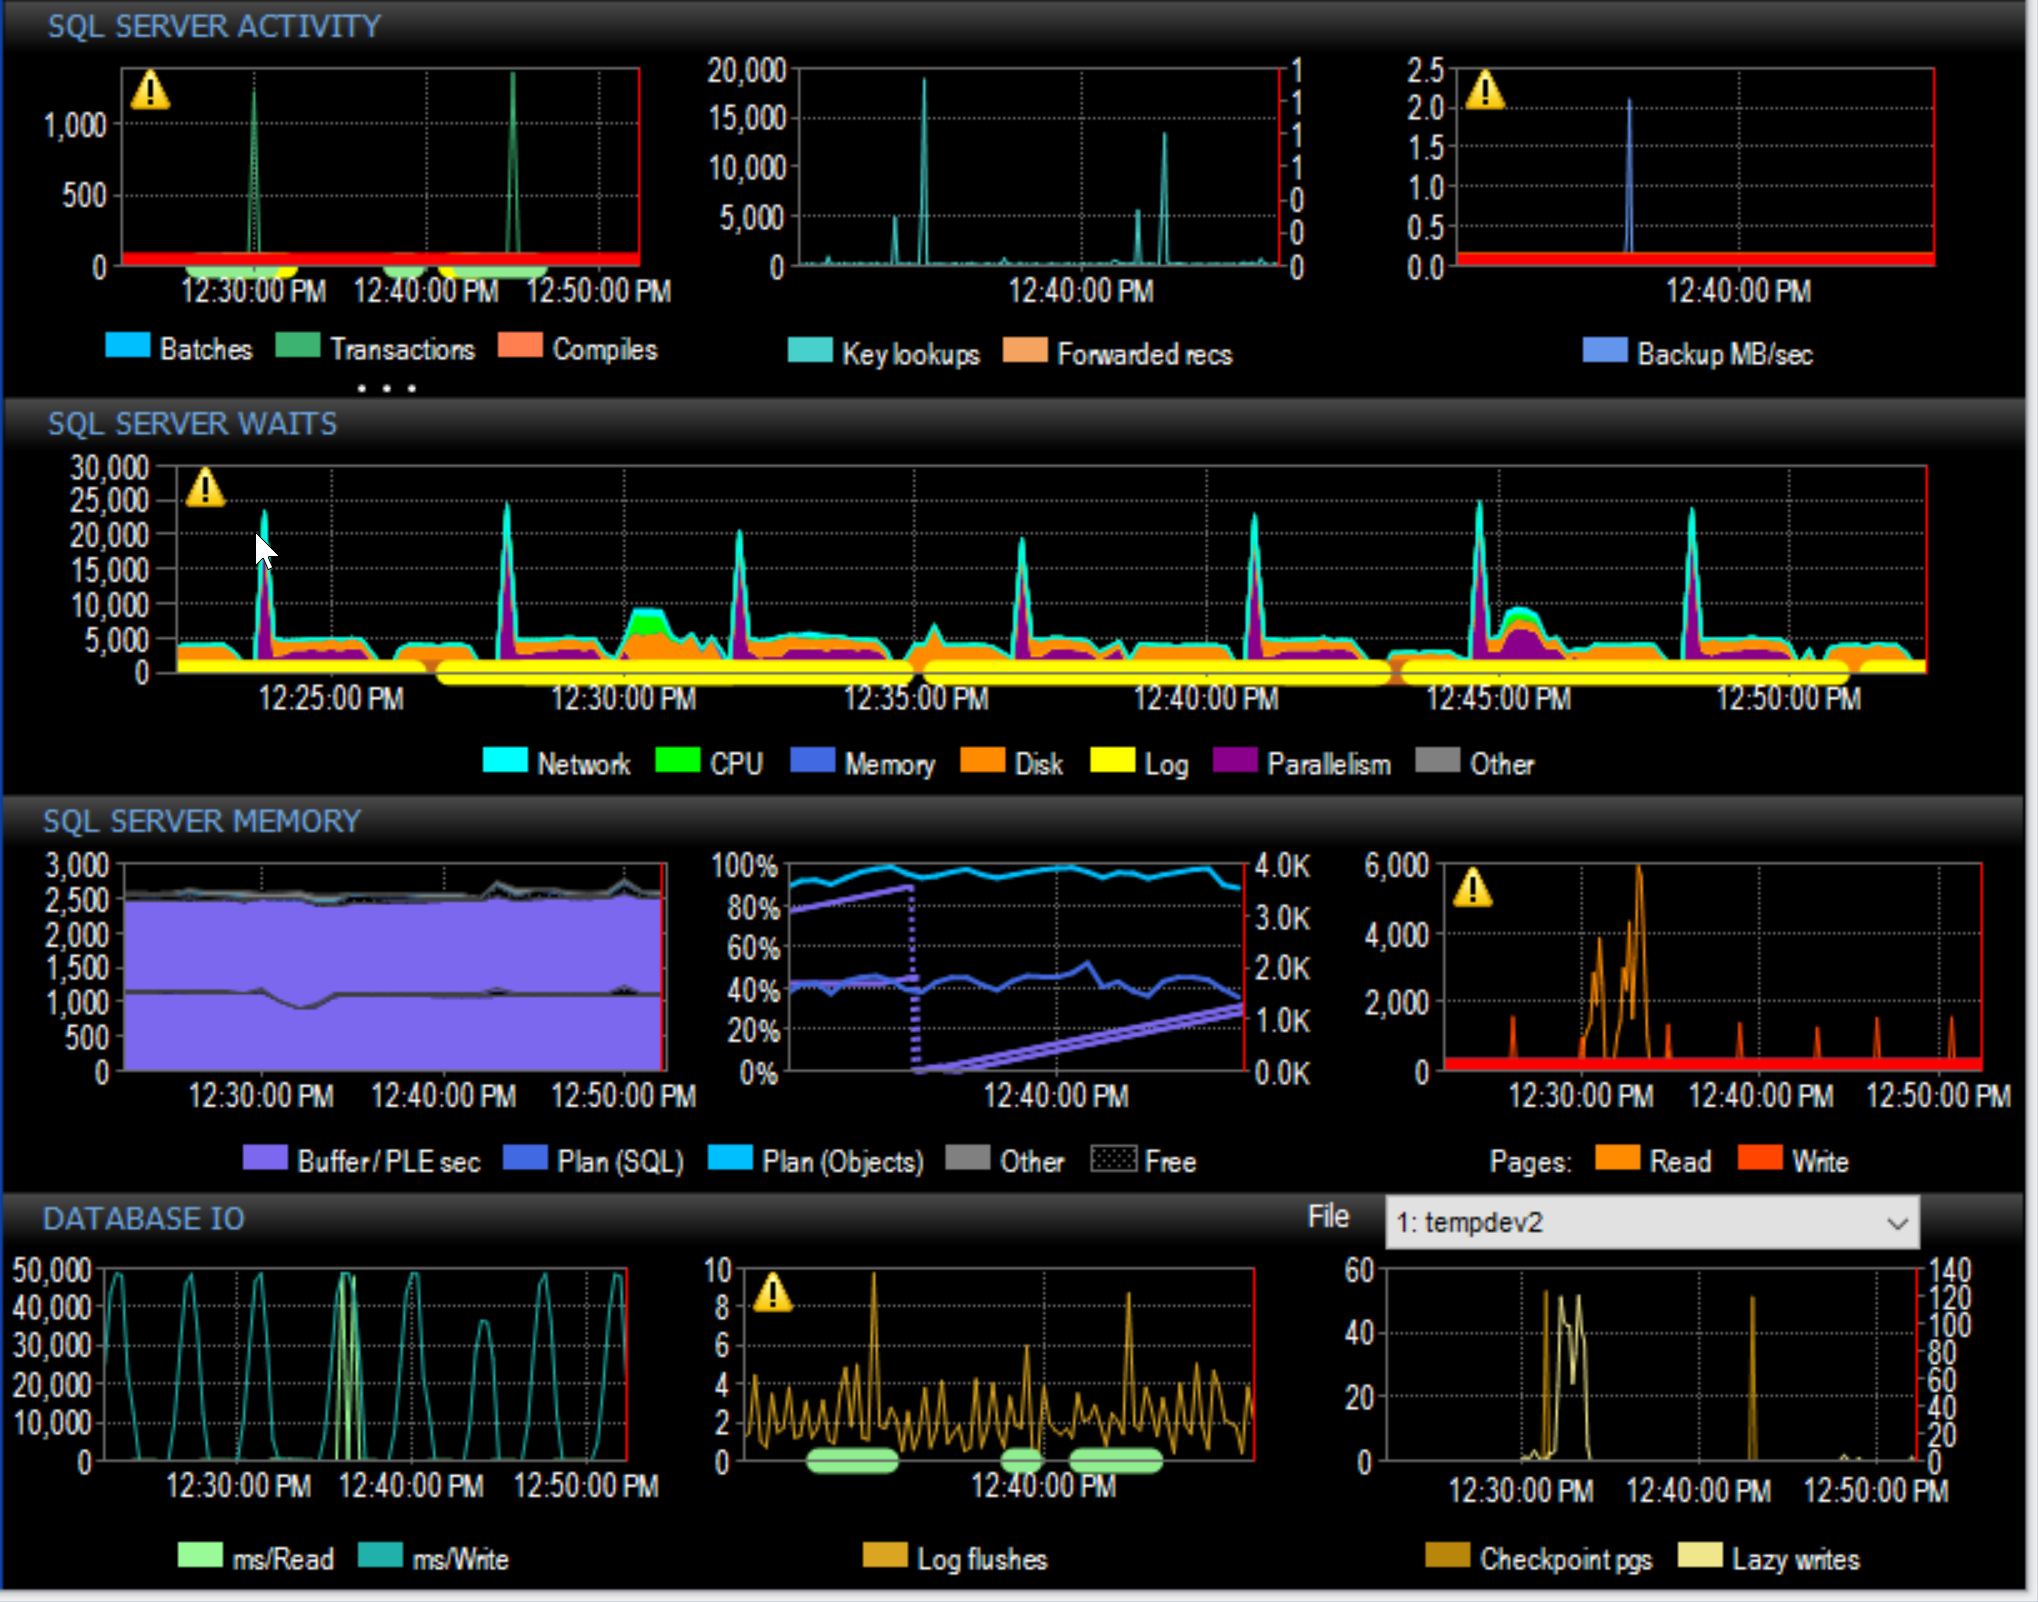 SentryOne Performance Analysis Dashboard right side graphs